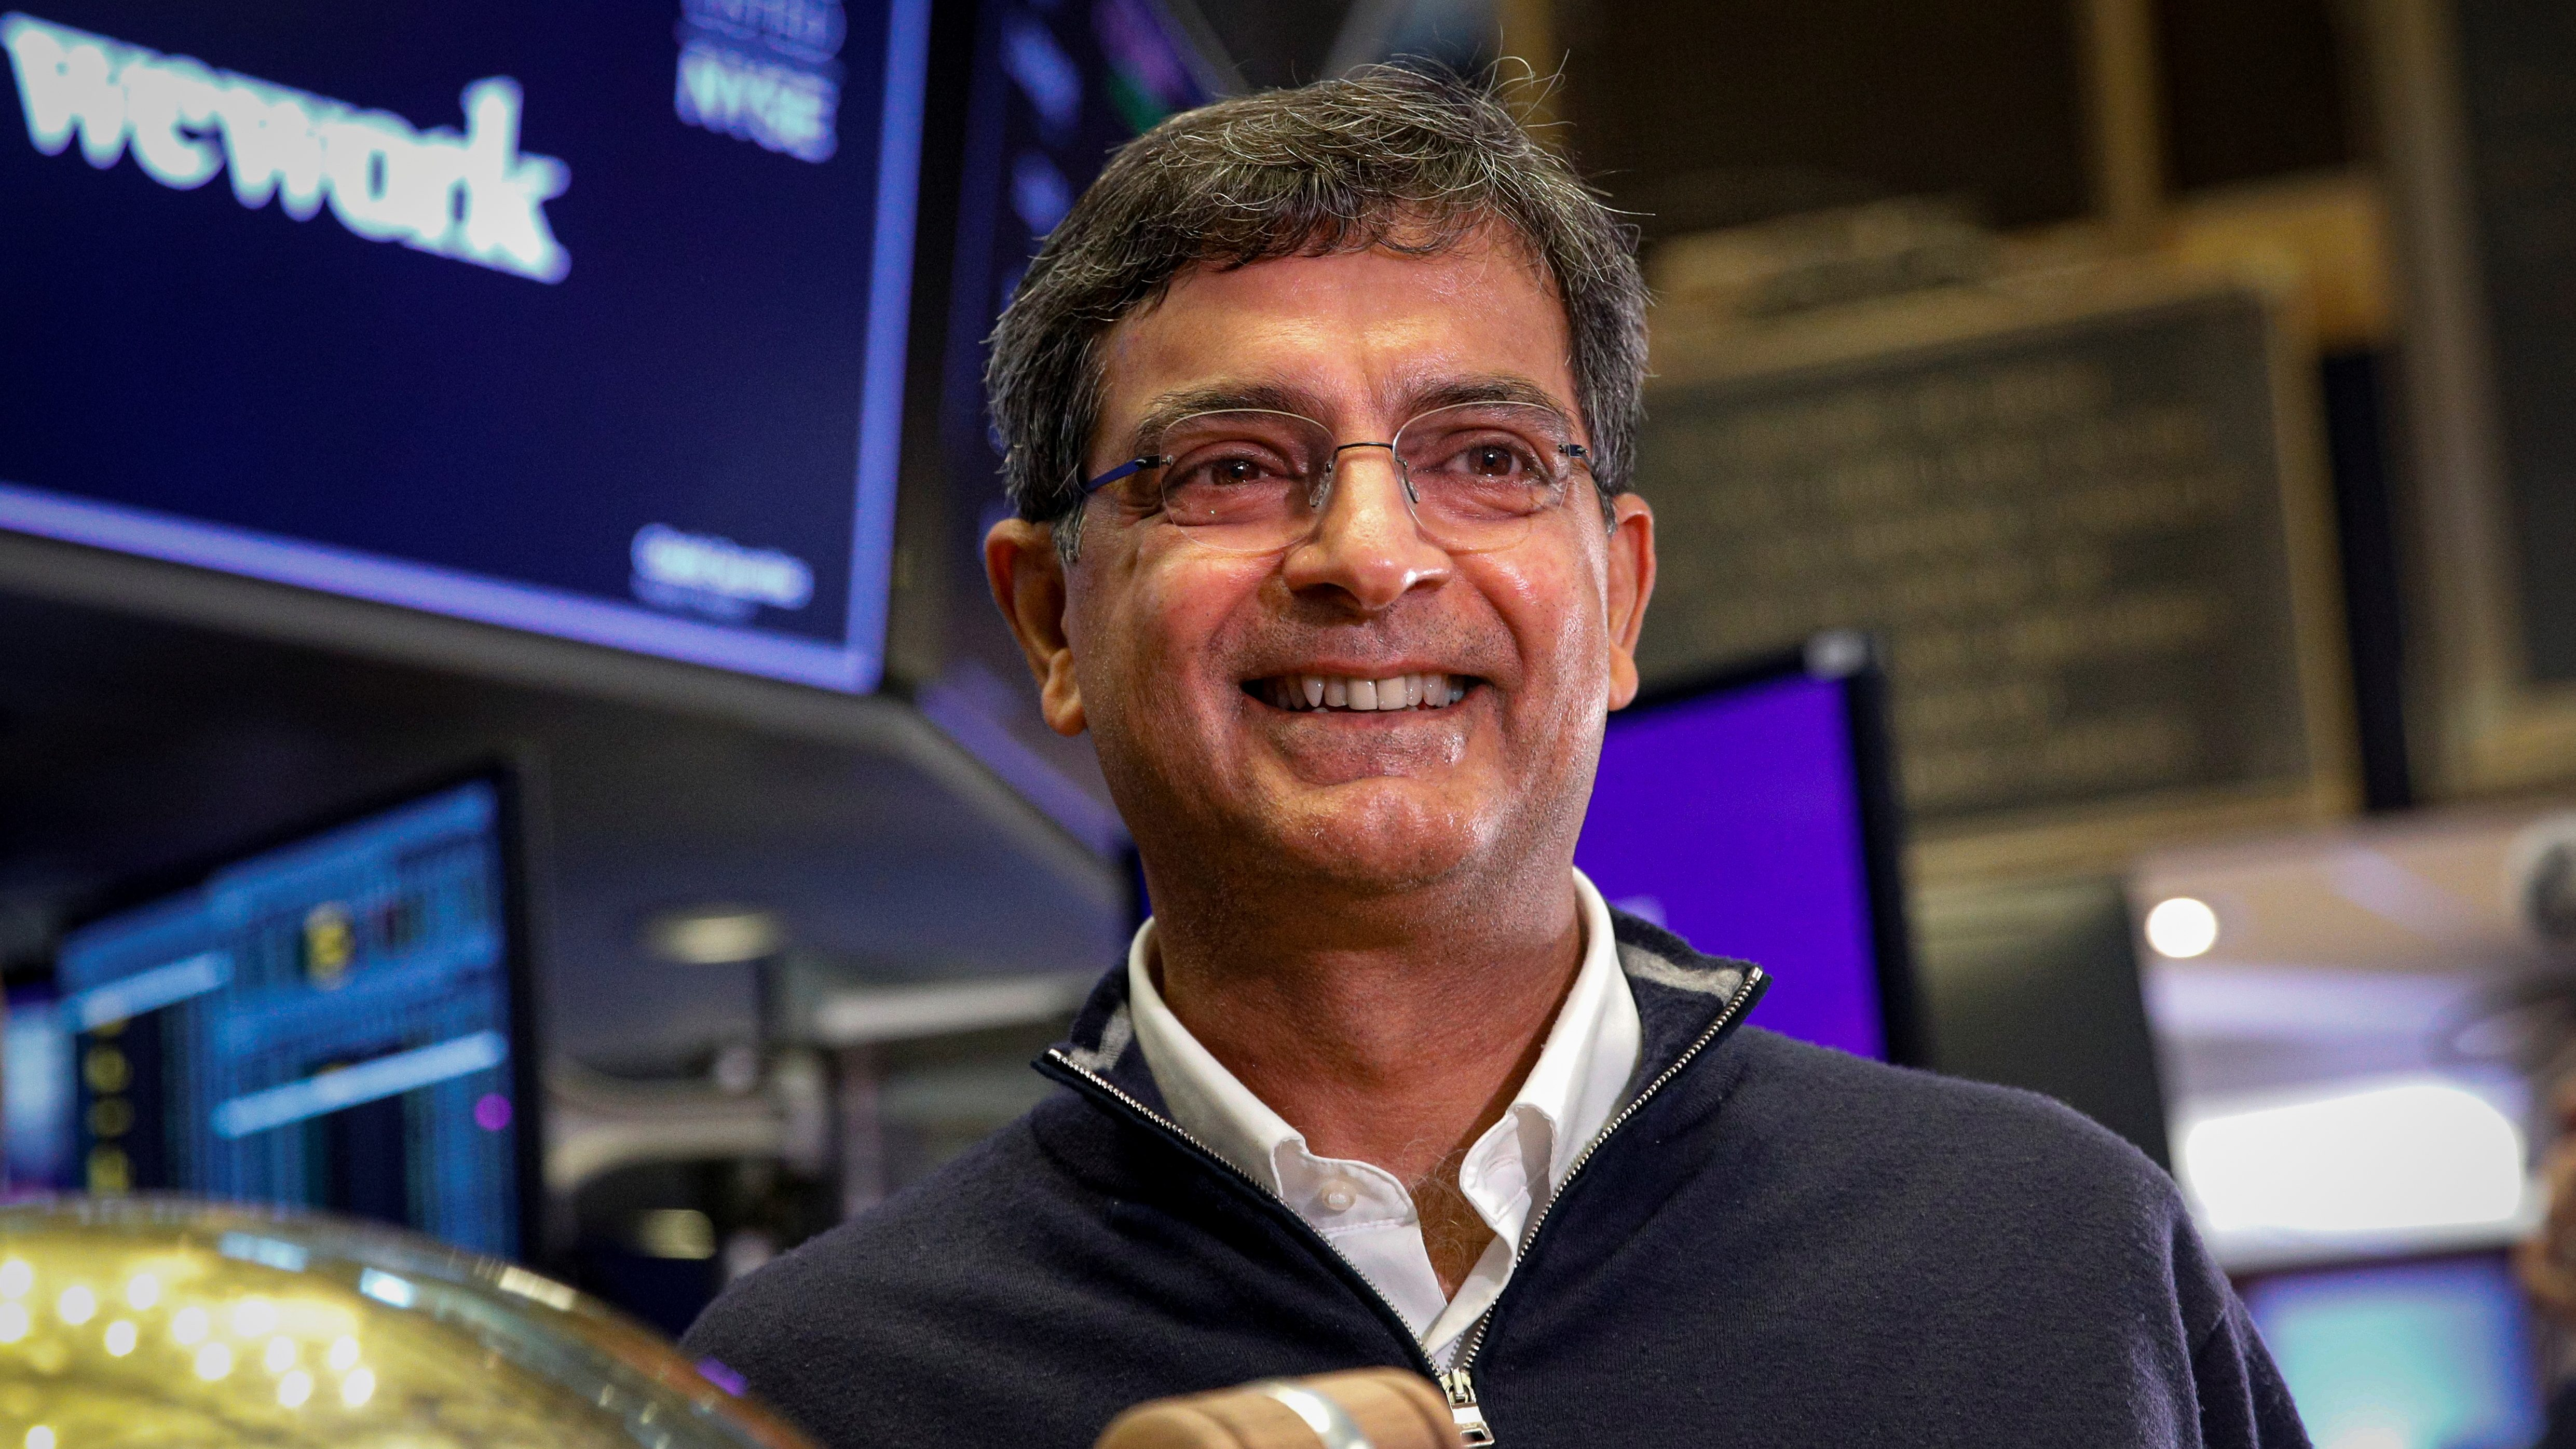 Sandeep Mathrani, CEO of WeWork, Inc. holds a gavel at his company's public debut on the floor of the New York Stock Exchange.